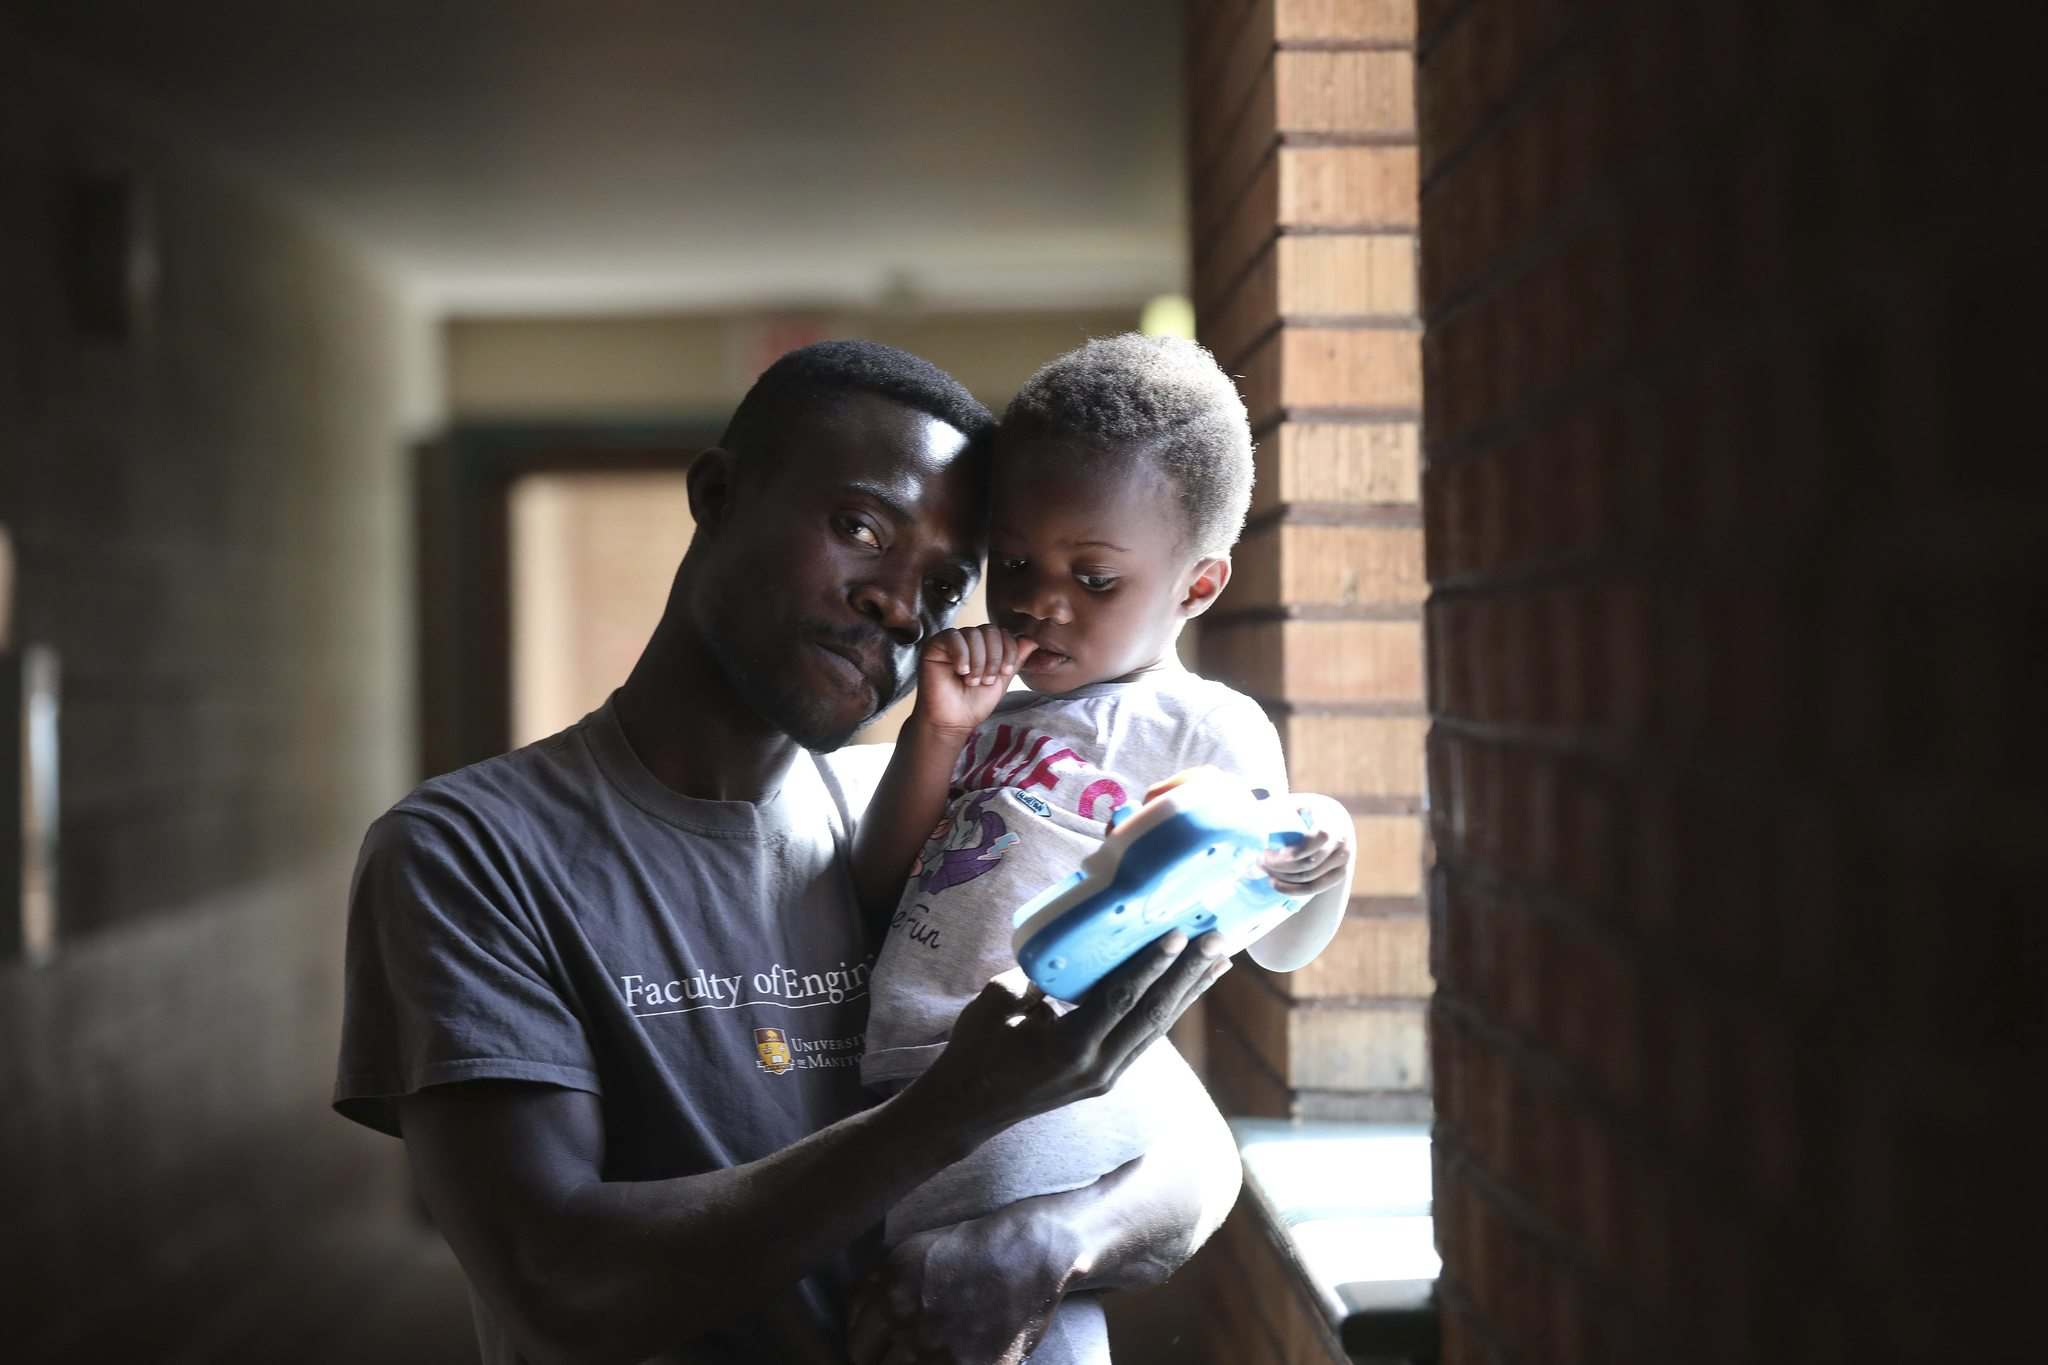 RUTH BONNEVILLE / WINNIPEG FREE PRESS</p><p>Photos of Ben (can't provide last names), from Ghana and his 2-year-old daughter Blessing at his apartment in the west end. Ben is now in Canada by himself with his little girl after trying to claim asylum in the US where Blessing's mom was deported back to Ghana.See Carol Sanders | Reporter</p><p>June 13, 2018</p></p>